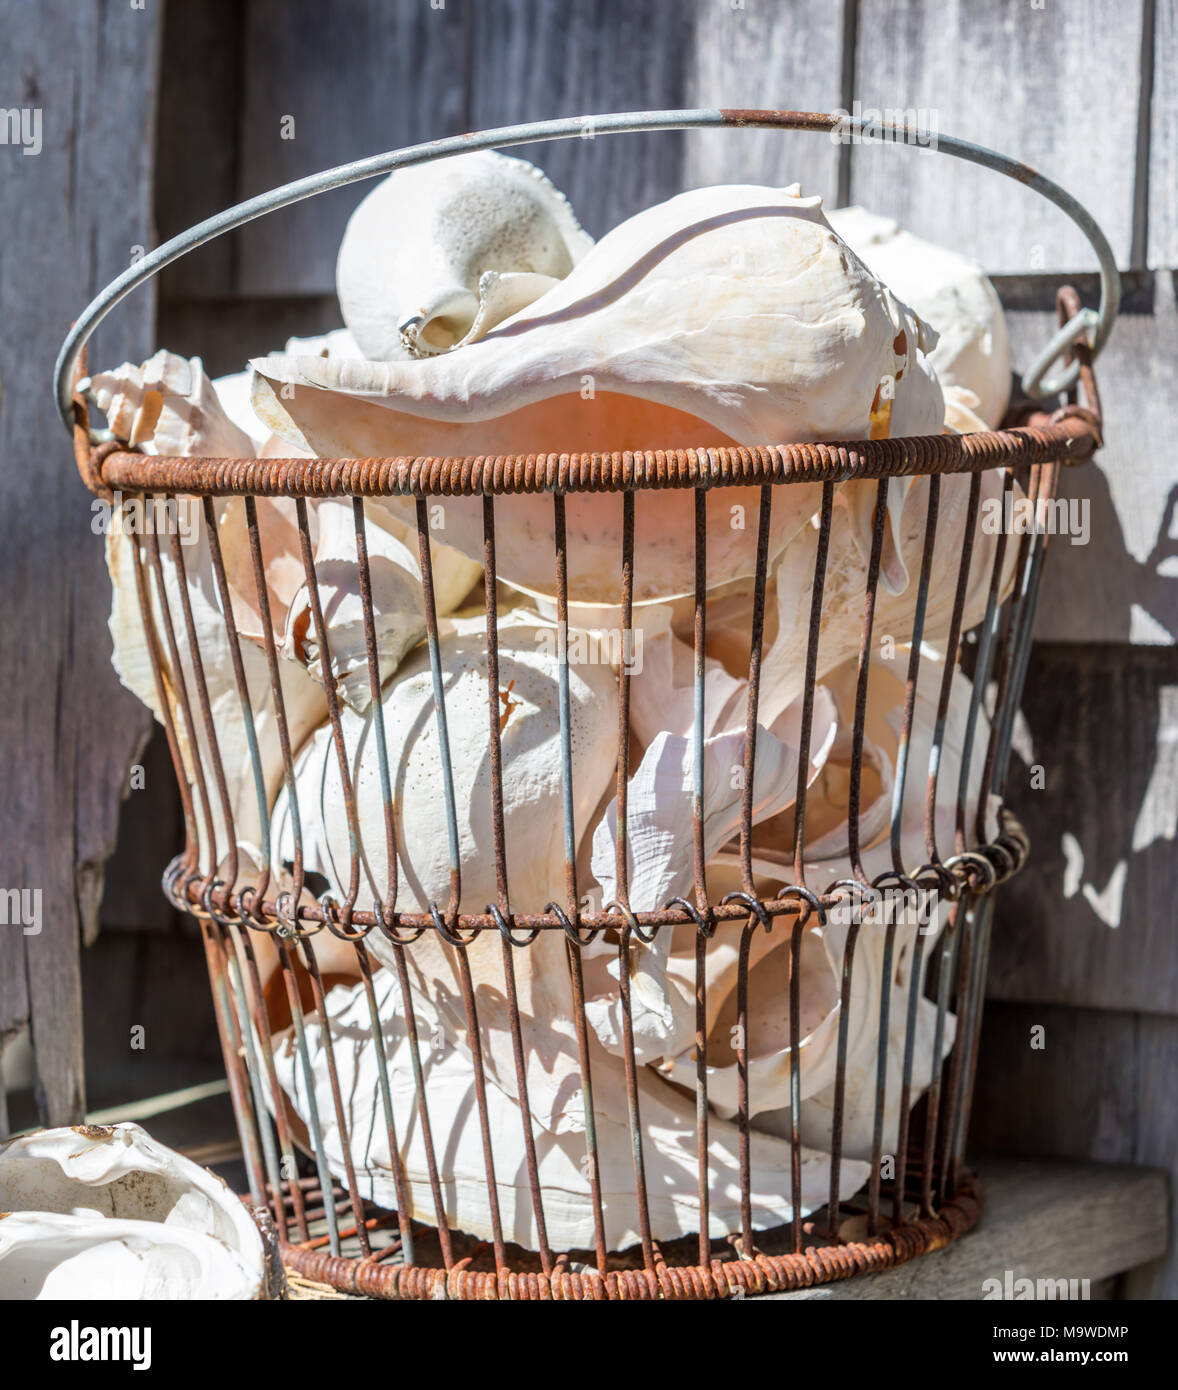 large wire basket holding assorted sea shells Stock Photo